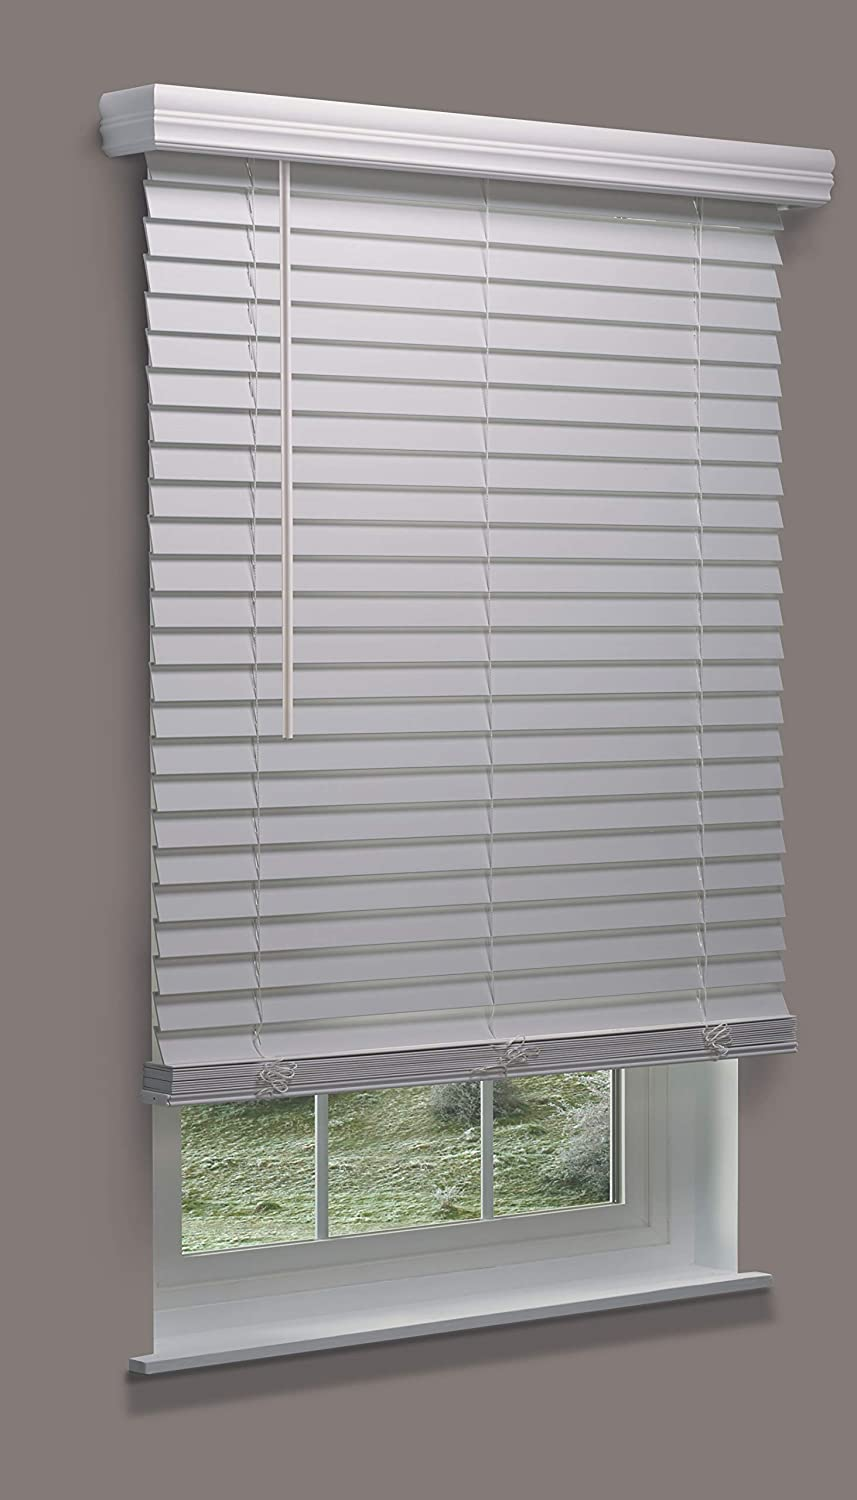 Linen Avenue Custom Cordless Faux Wood Blind White 44 1//2 W x 60 to 64 H Outside Mount